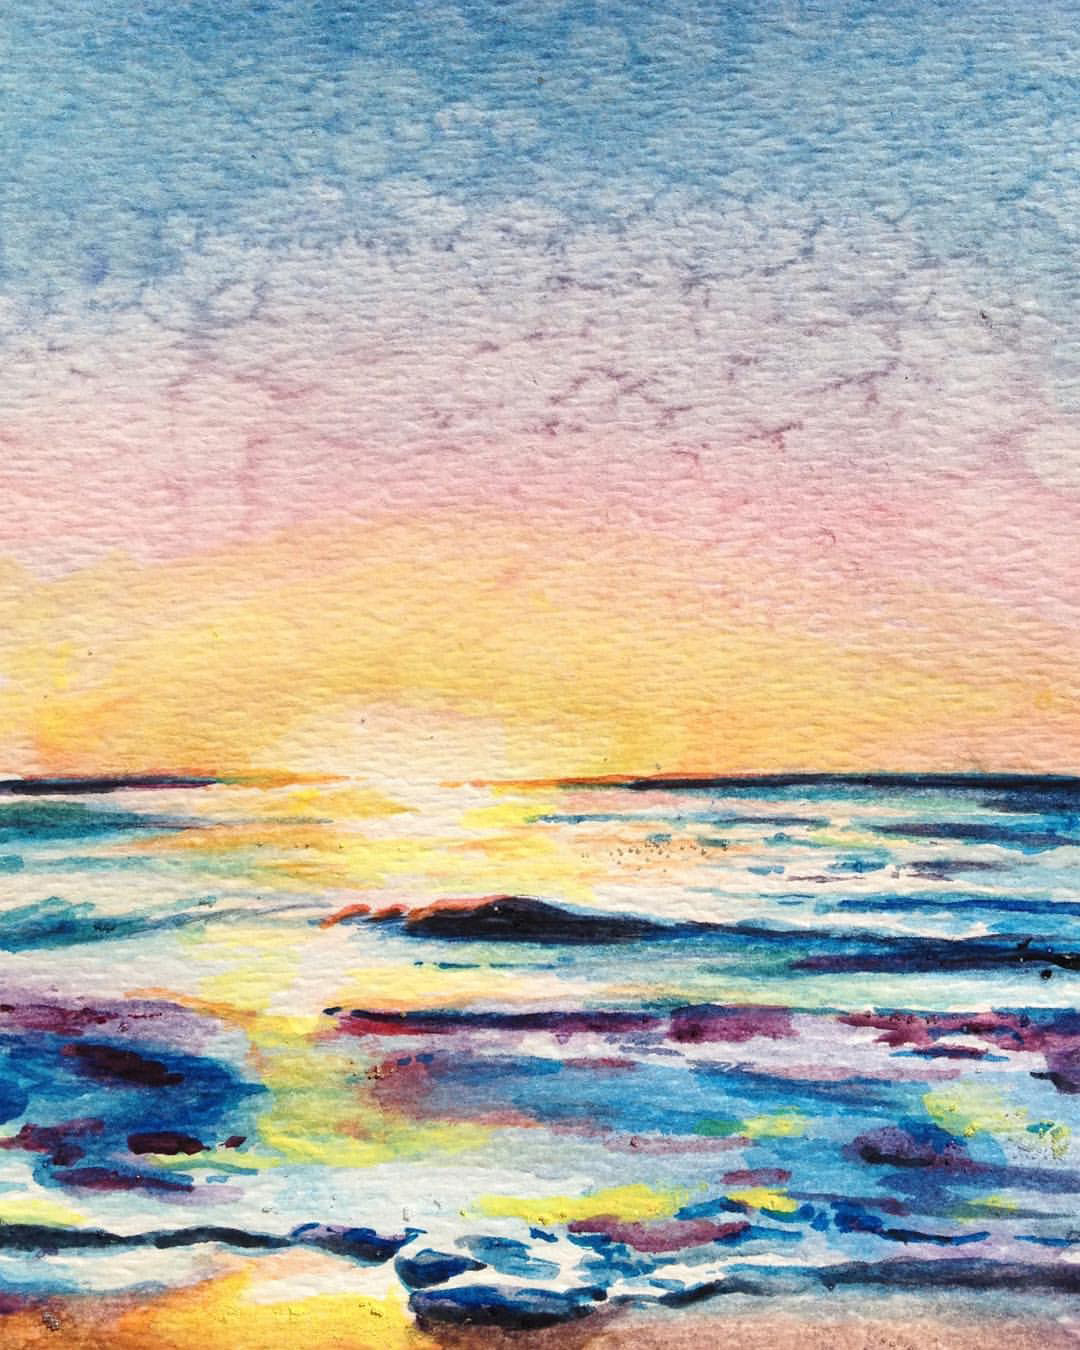 """With Every Sunset There is Another Sunrise •  Watercolor on paper ∙ 9 x 6"""" ∙ 2016"""